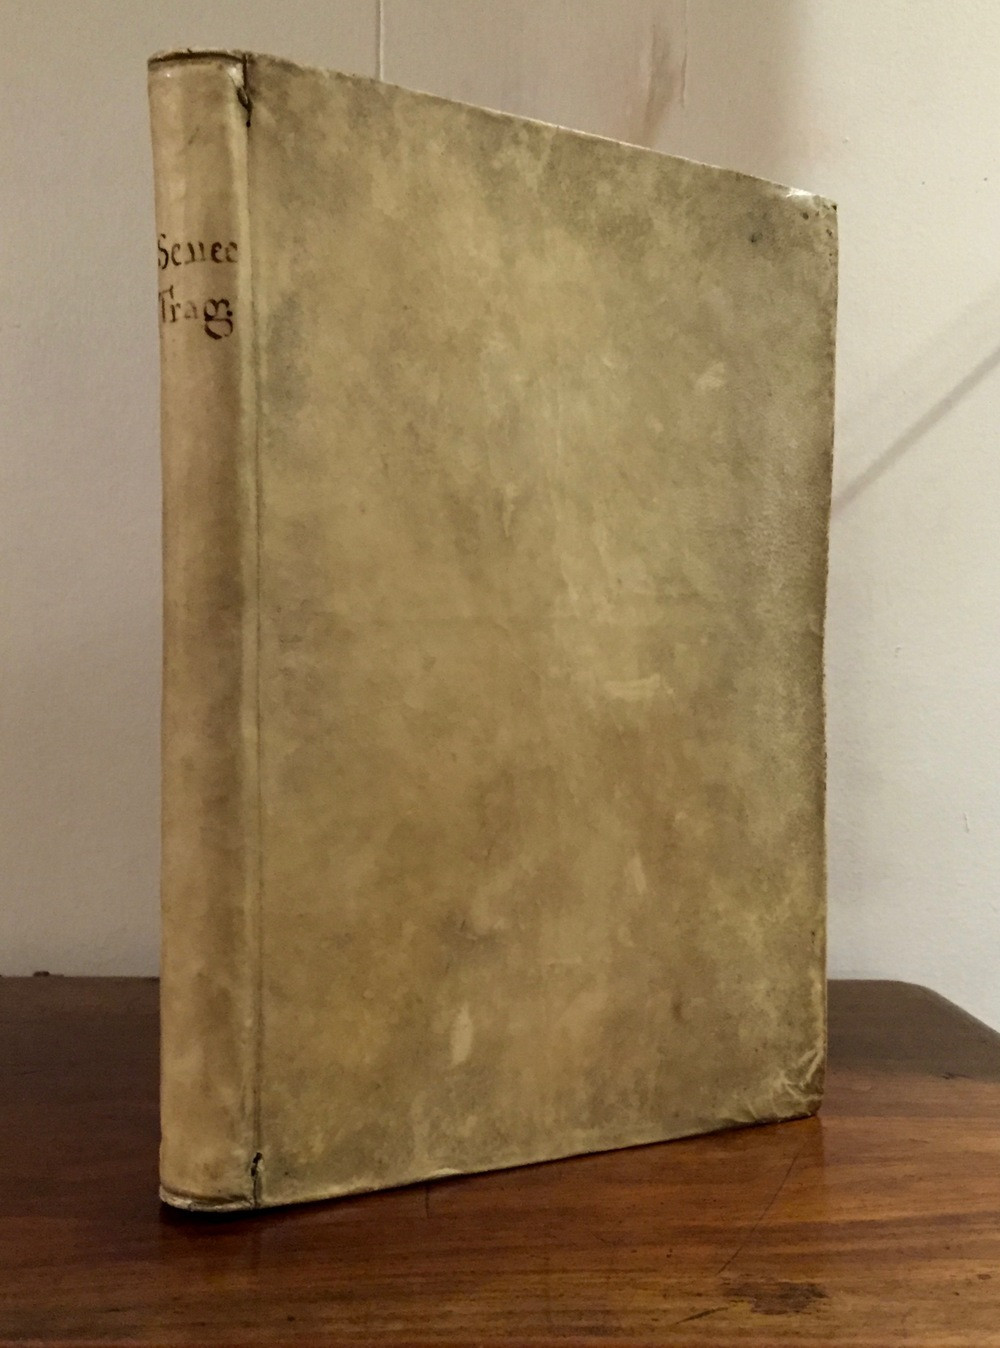 The binding; note the hand-written title and the visible binding thread.